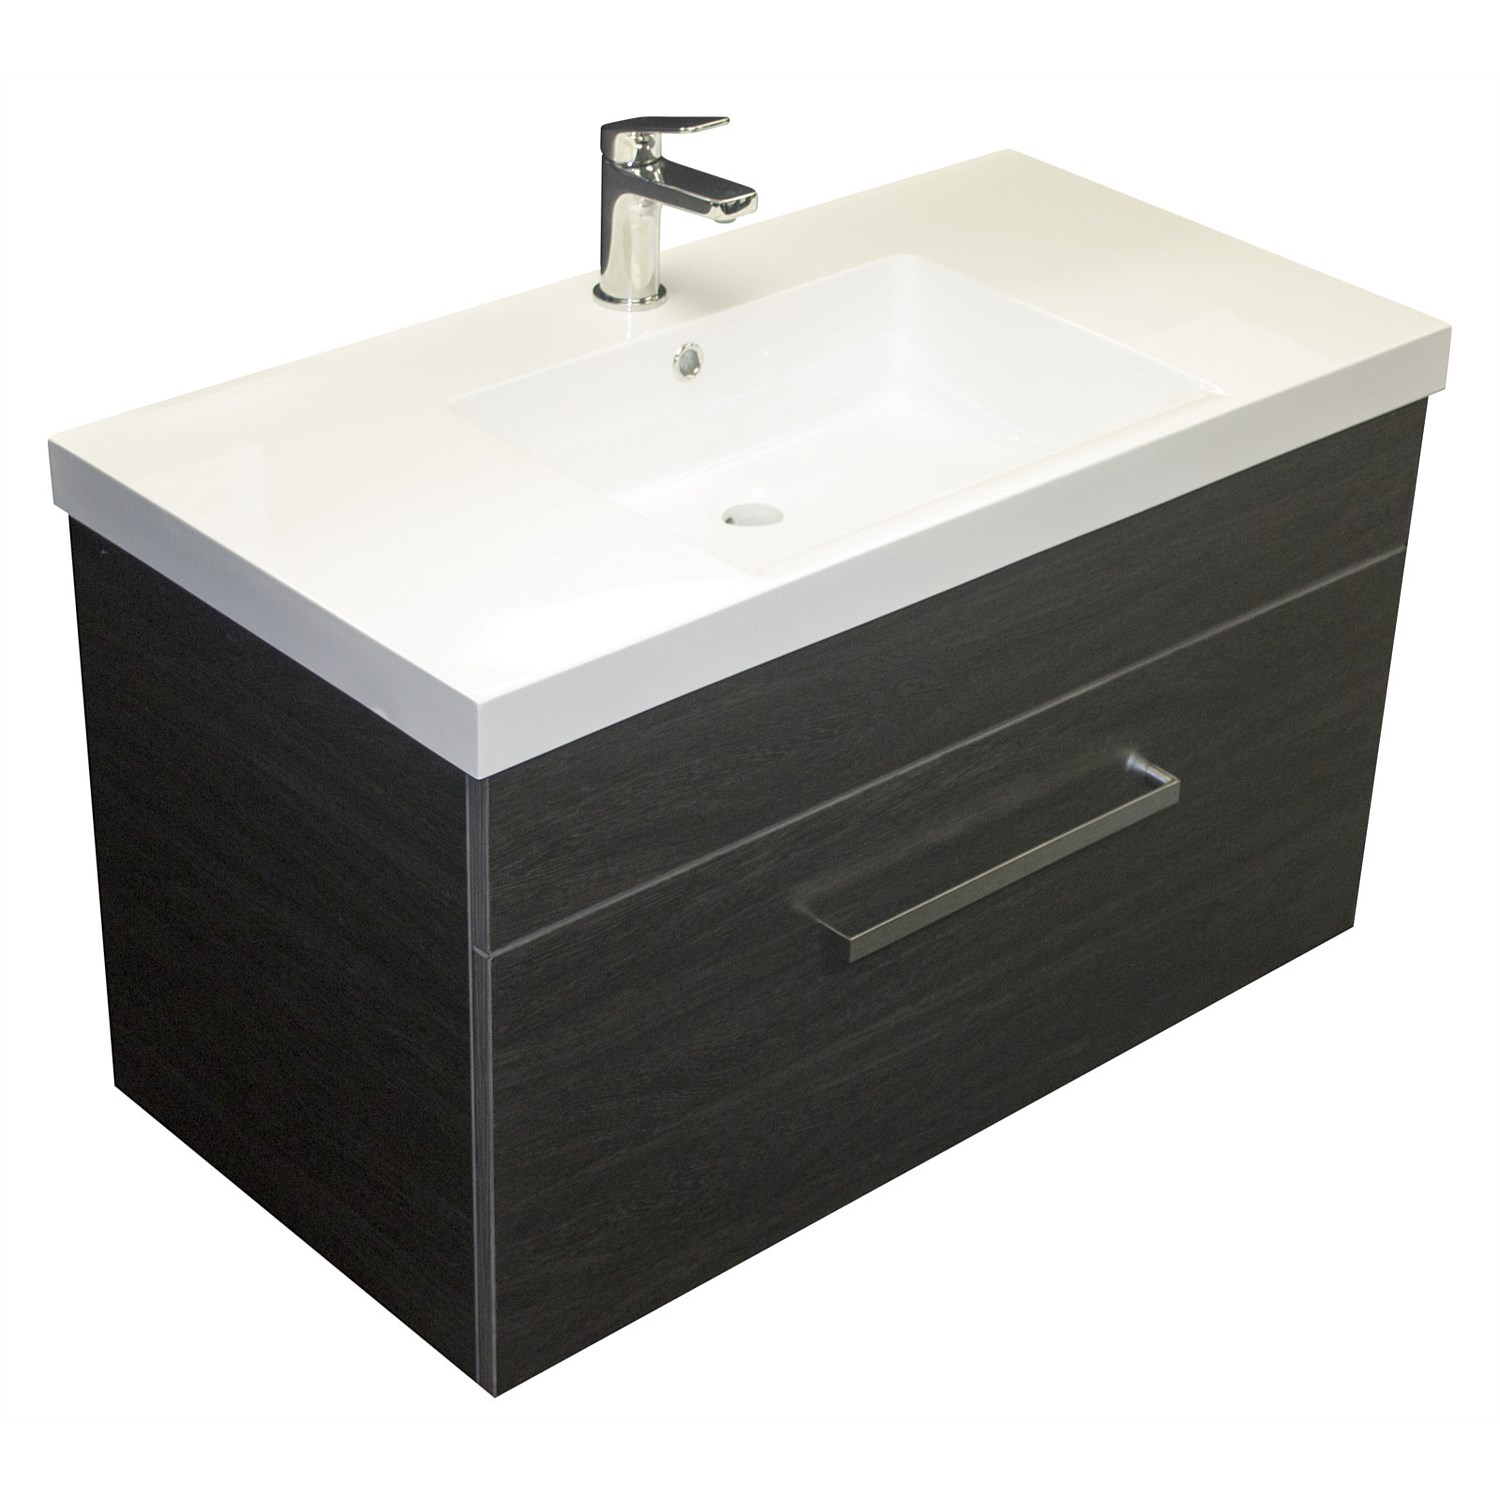 1200mm Bathroom Vanity Vanities And Storage Levivi York Neo 1200mm Vanity